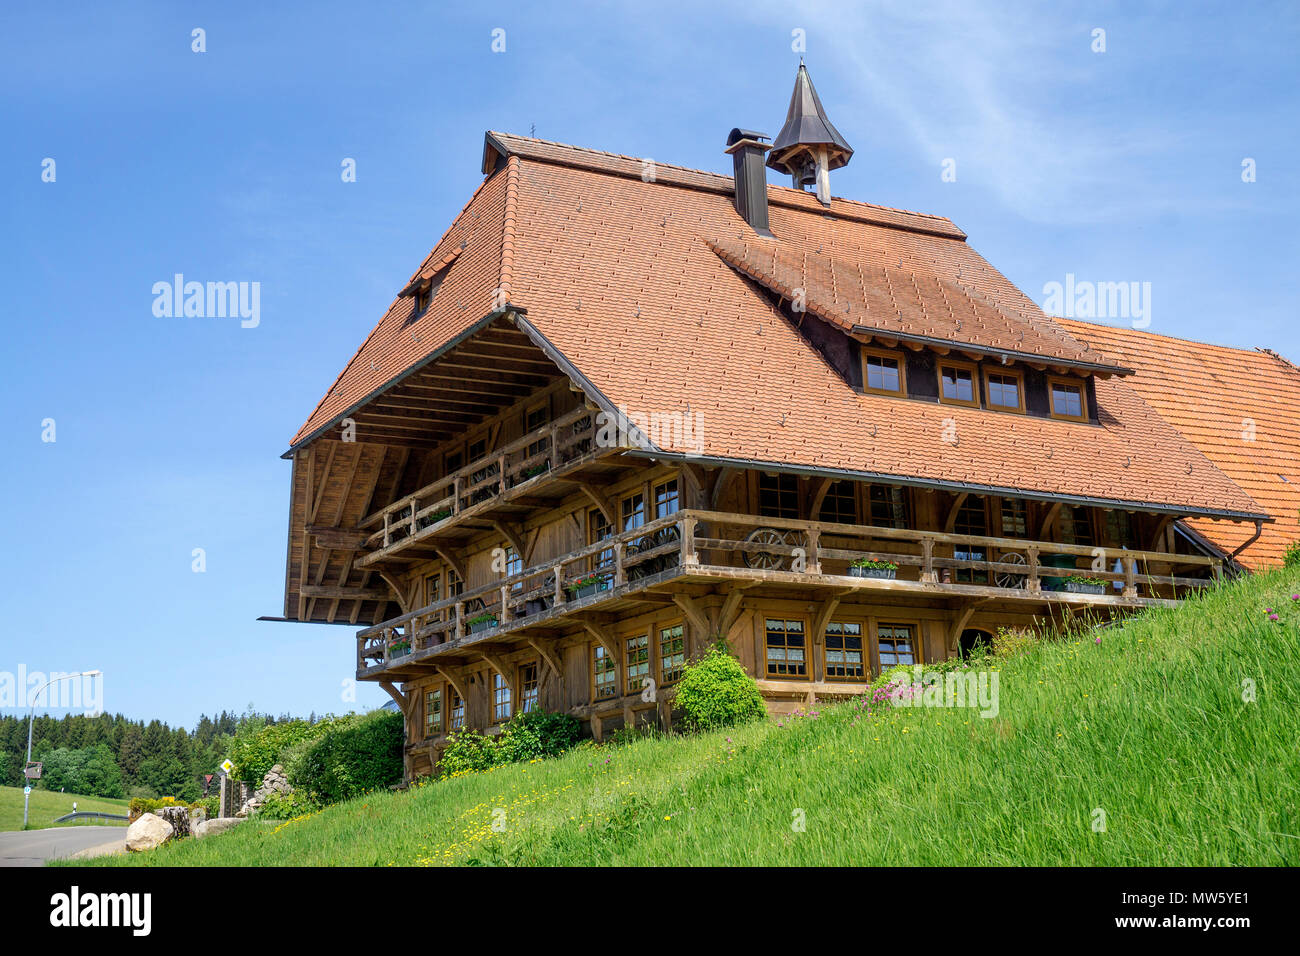 Typical wooden Black Forest house at village Schonach, Black Forest, Baden-Wuerttemberg, Germany, Europe - Stock Image